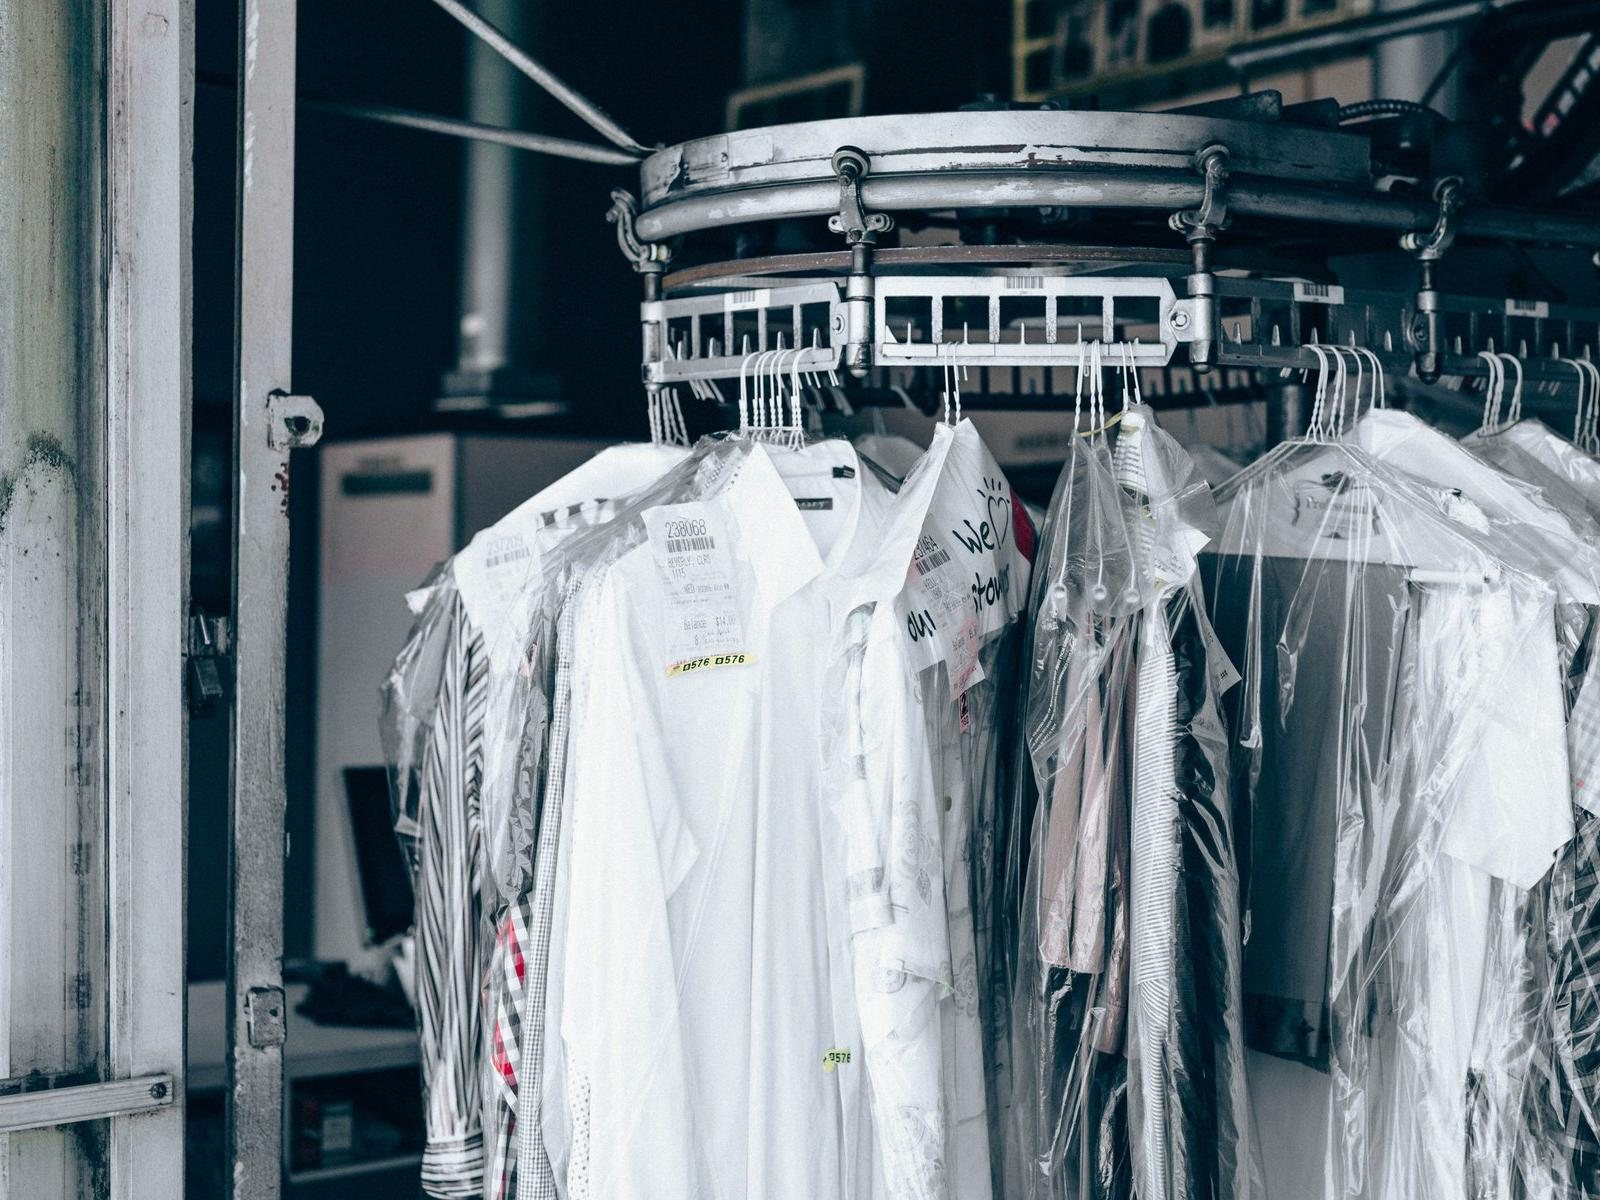 Clothes on dry cleaners rack